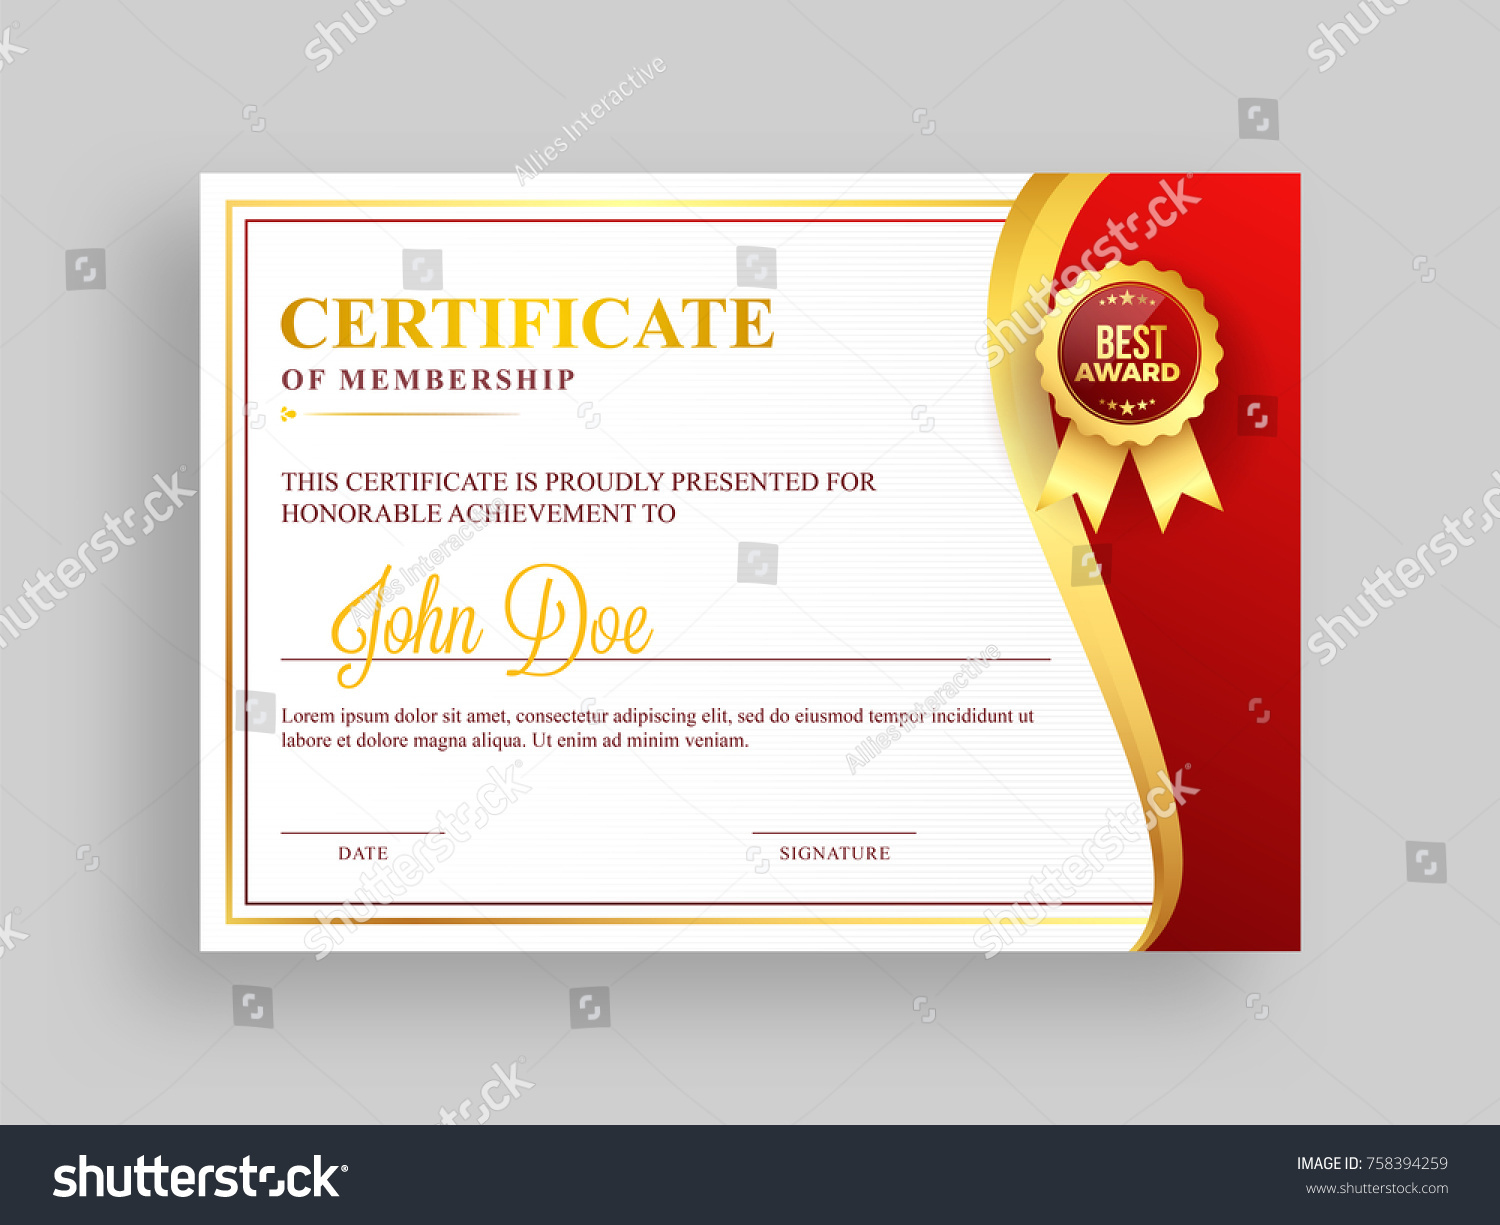 Certificate Membership Template Red Golden Design Stock Vector